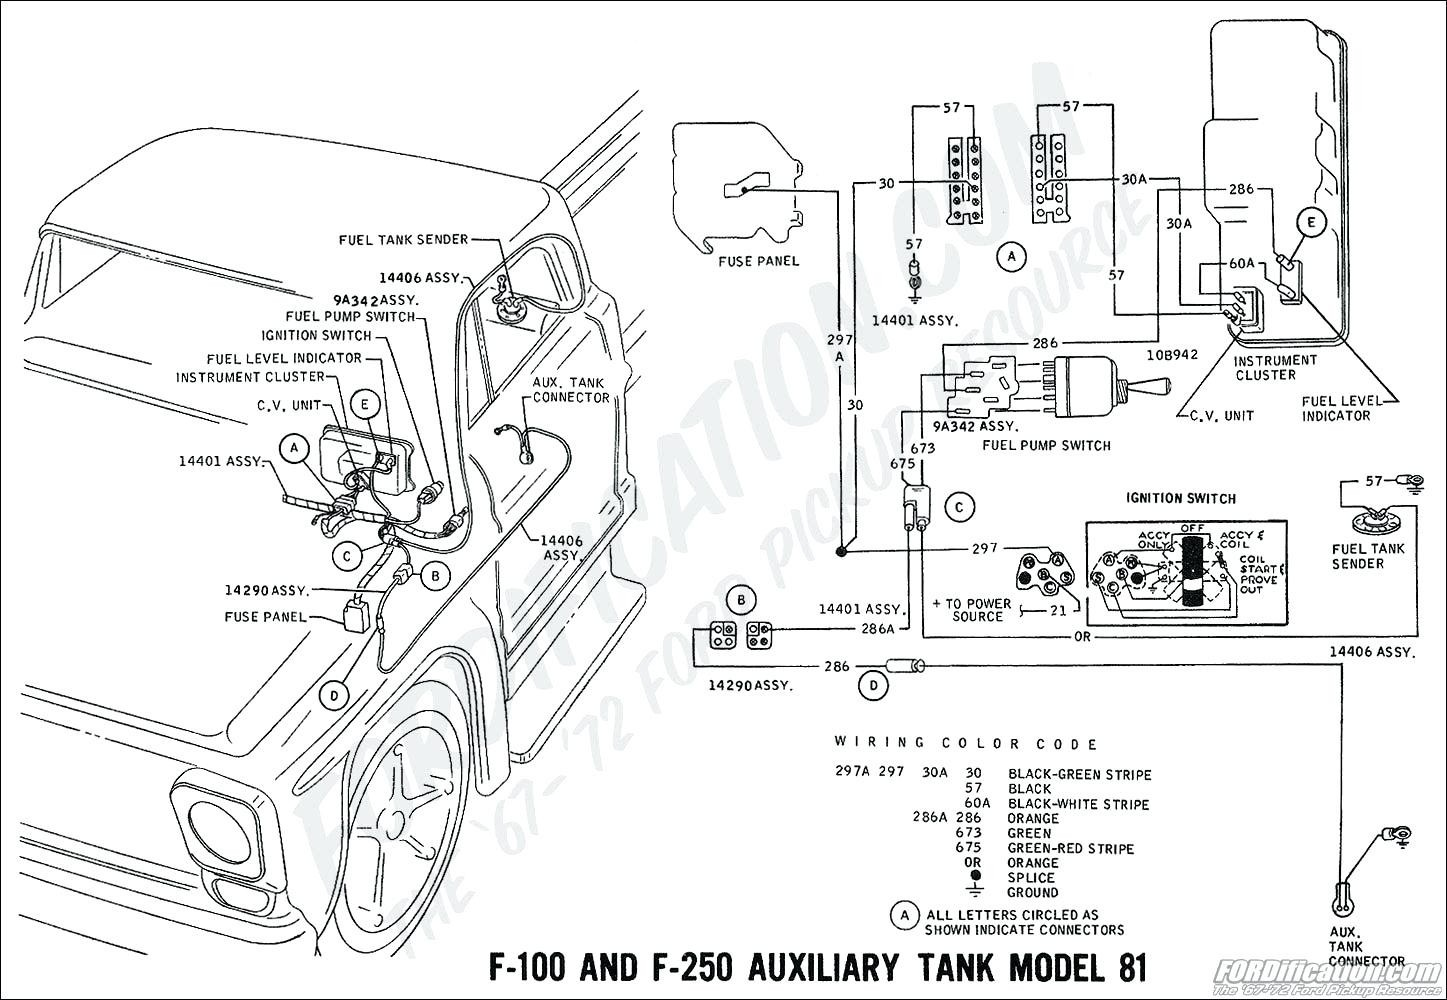 Equus Fuel Gauge Wiring Diagram Also Ford Ranger Fuel Gauge Wiring